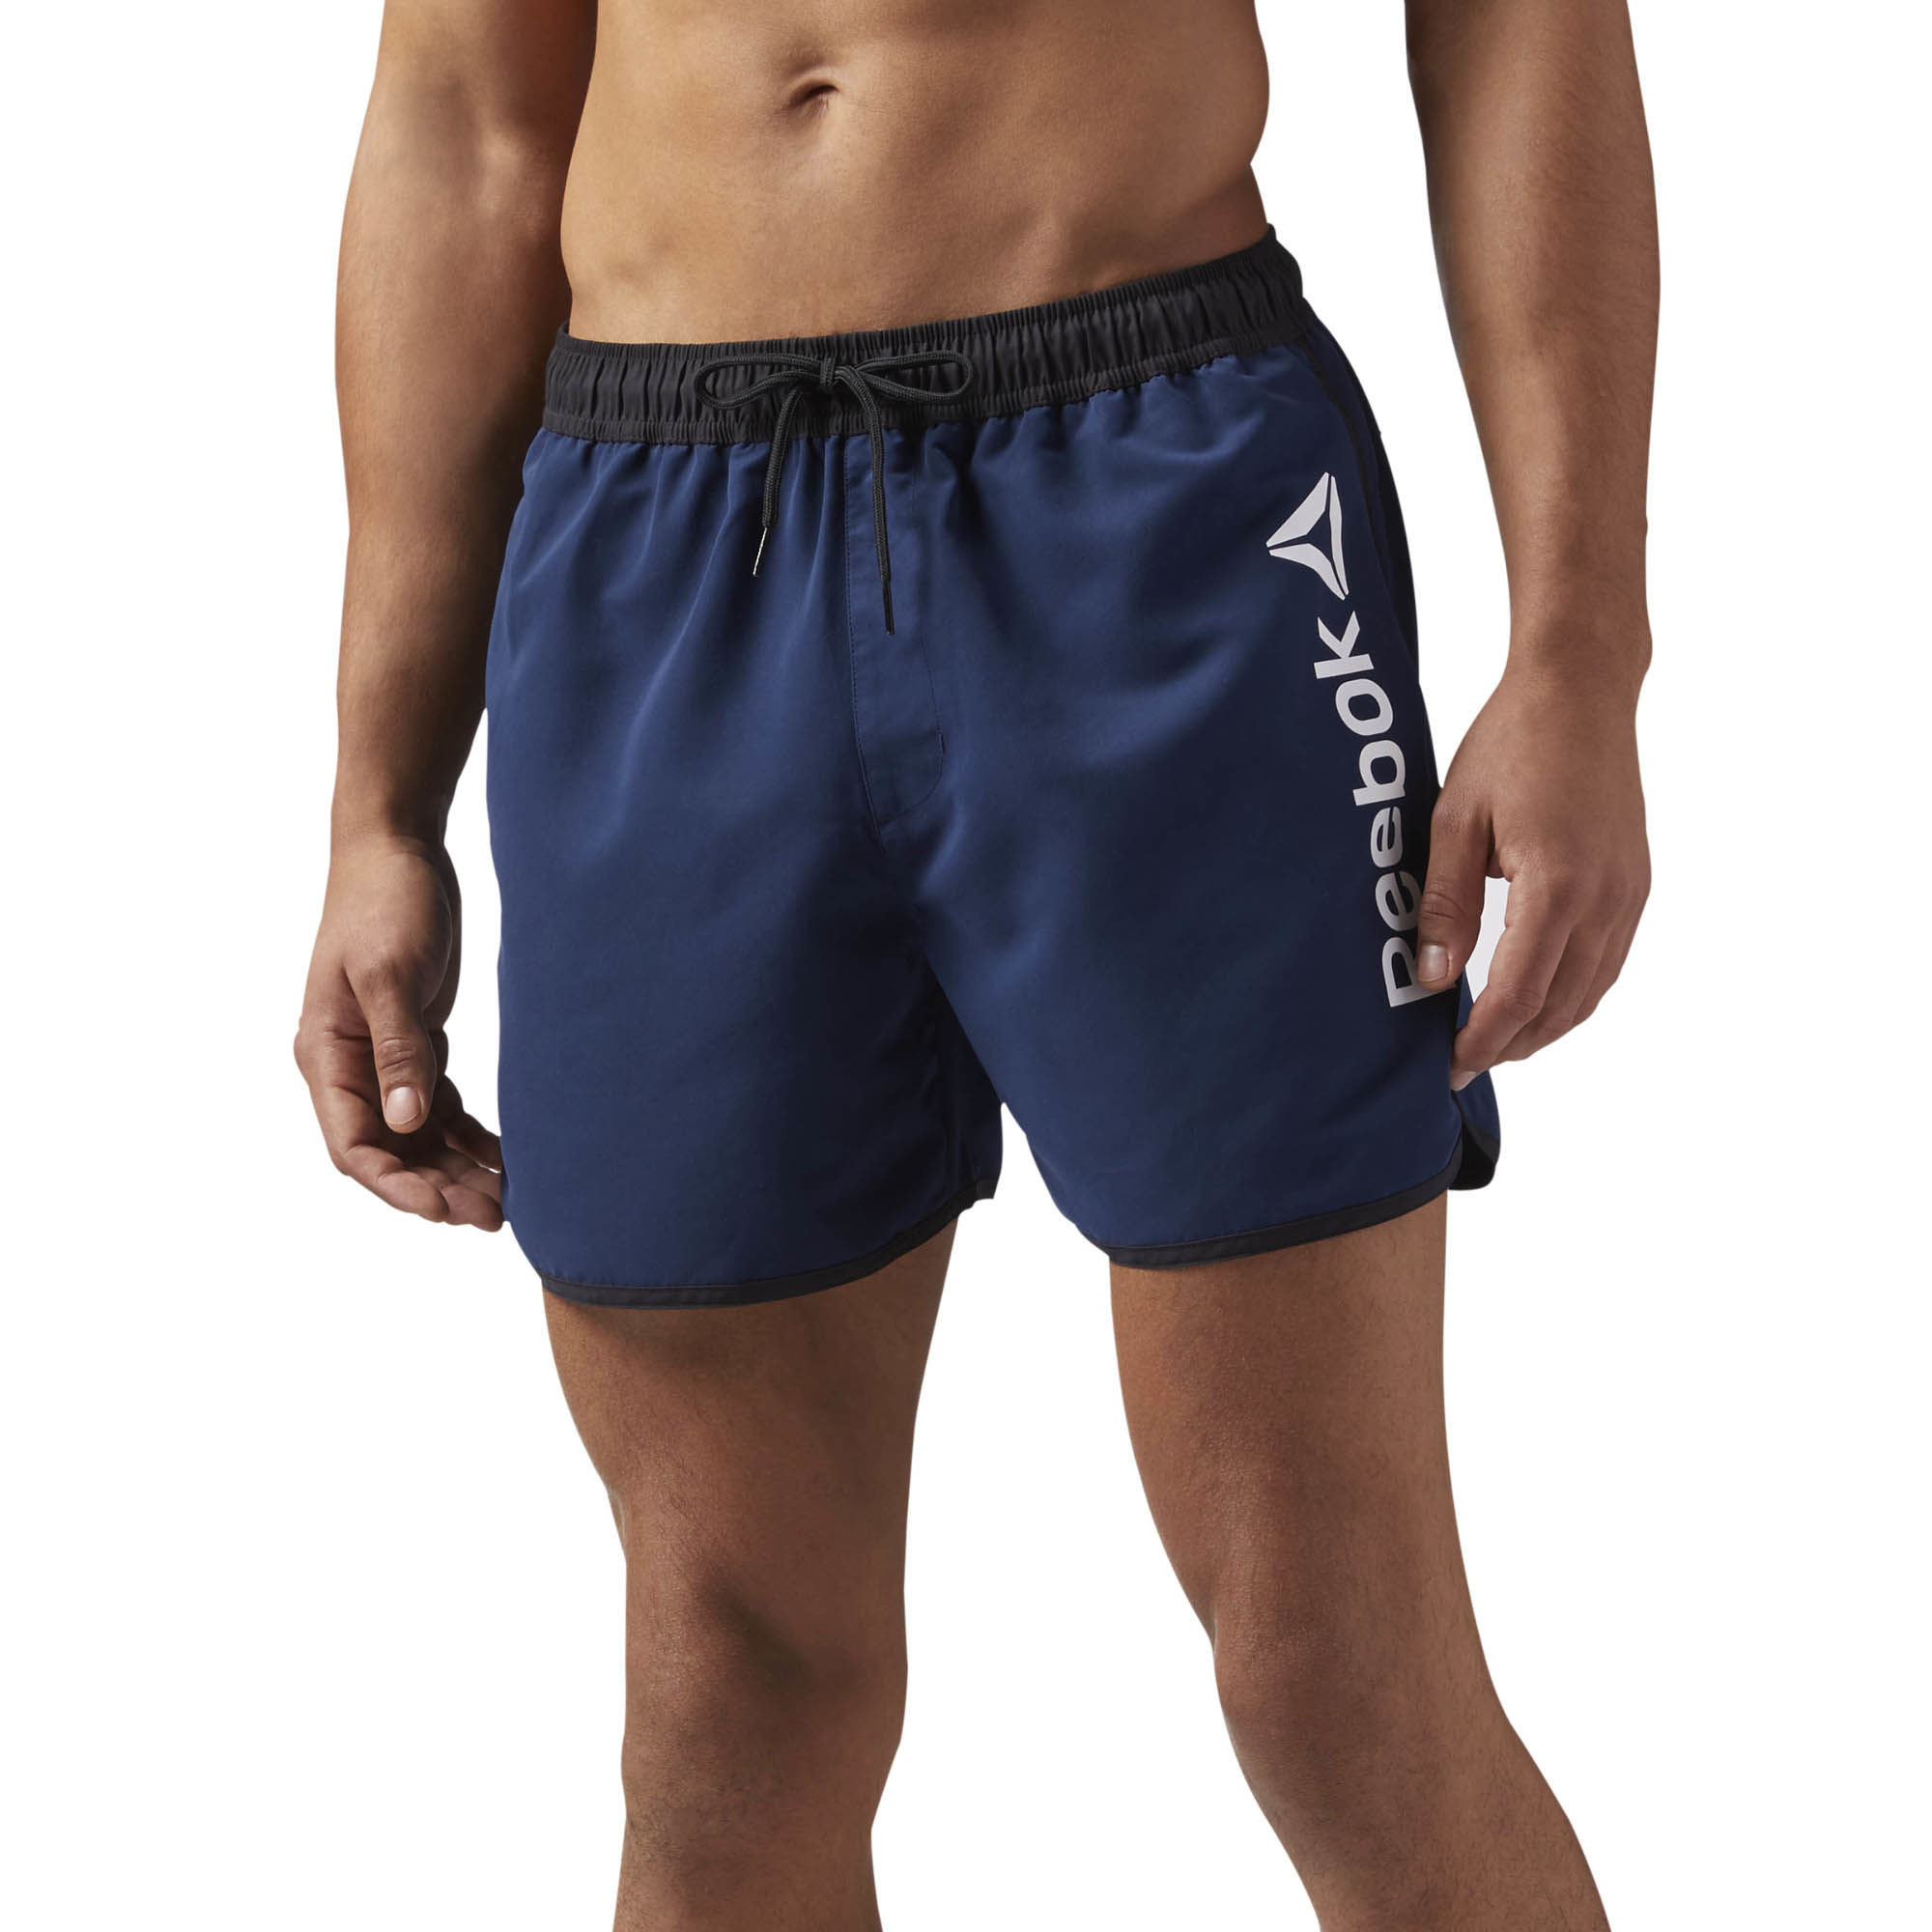 Шорты мужские Reebok Bw Retro Short, цвет: синий. CW8837. Размер XL (56/58) насос wilo yonos pico 15 1 4 130